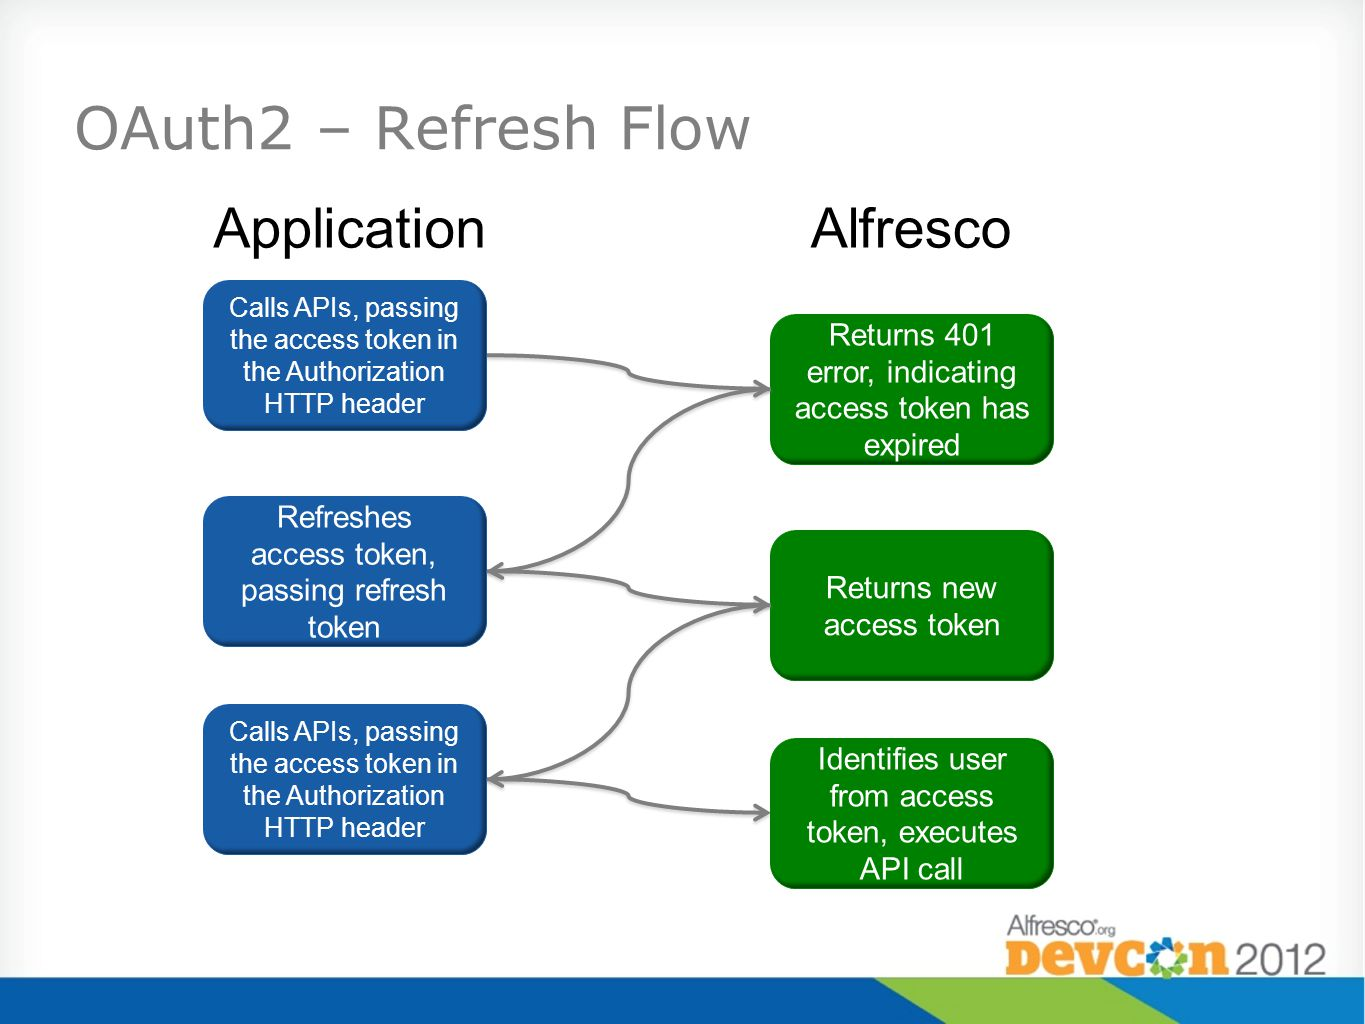 OAuth2 – Refresh Flow Calls APIs, passing the access token in the Authorization HTTP header Returns 401 error, indicating access token has expired Refreshes access token, passing refresh token Returns new access token ApplicationAlfresco Calls APIs, passing the access token in the Authorization HTTP header Identifies user from access token, executes API call